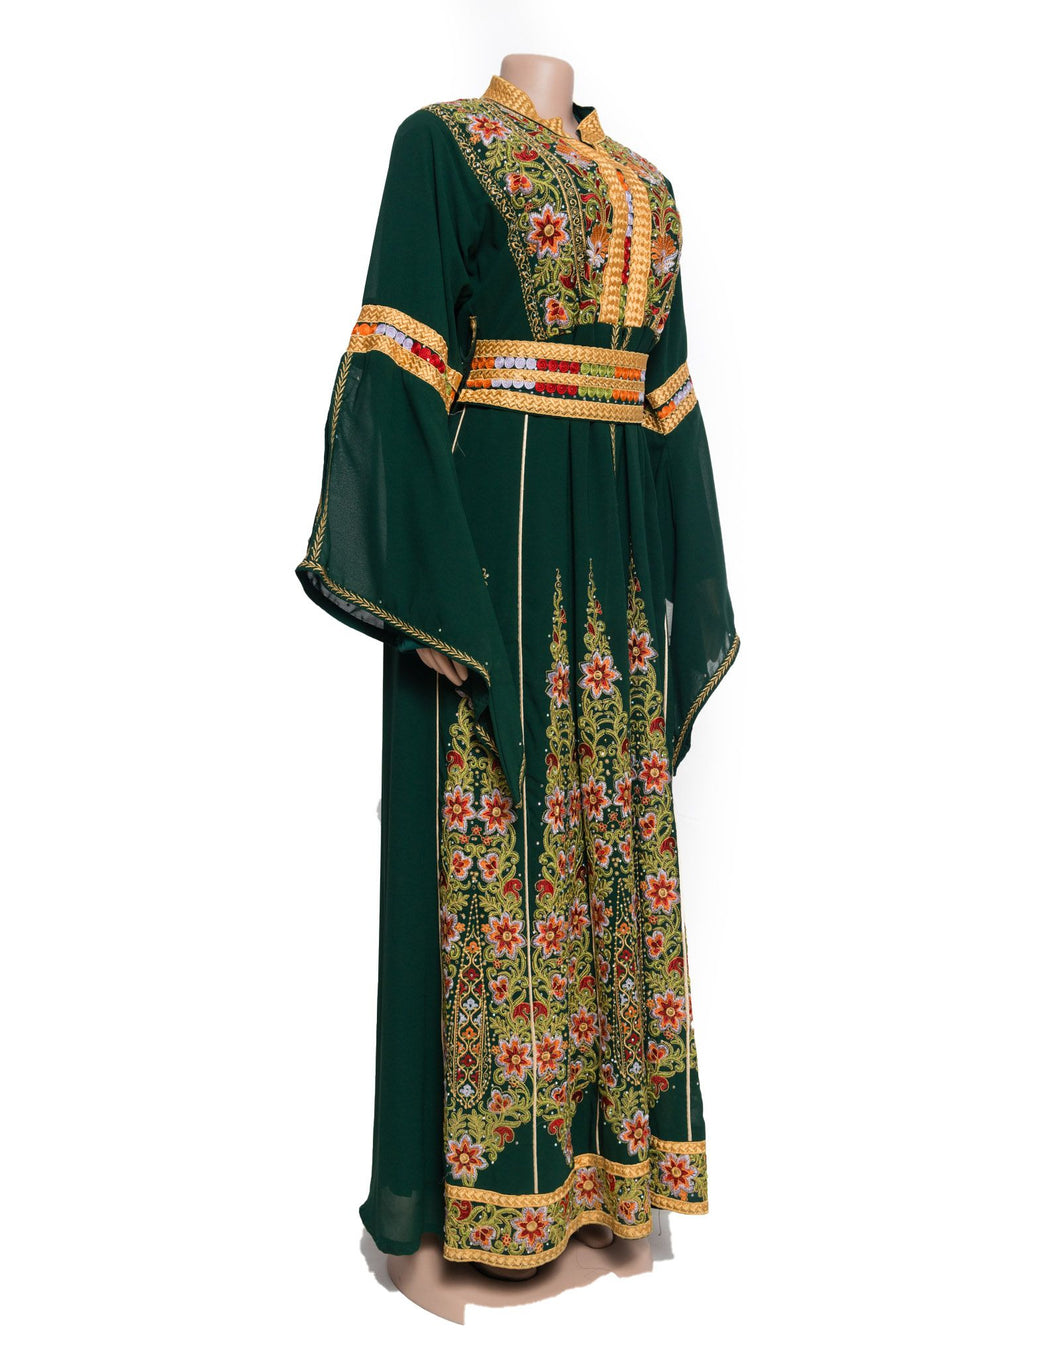 The queen dress - Green queen dress with stylish Palestinian embroidery